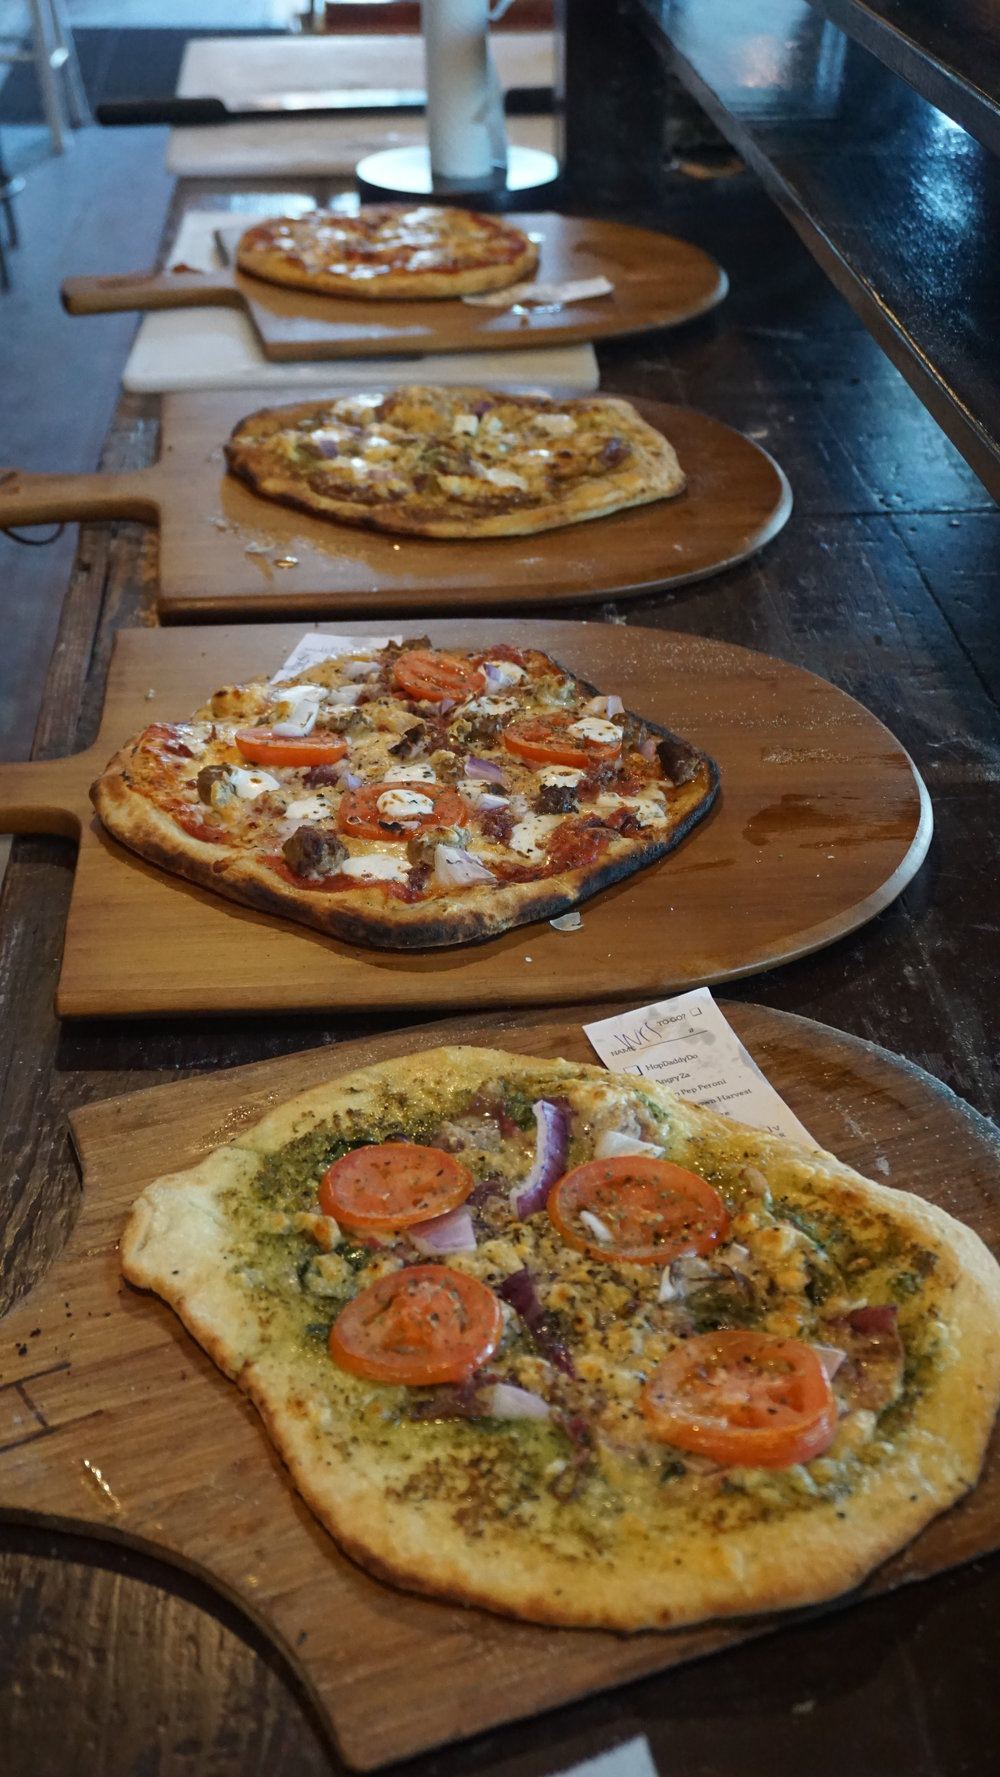 Hop Town Wood Fired Pizza went brick and mortar back in April and the entire Yakima Valley rejoiced. Dan Eierdam